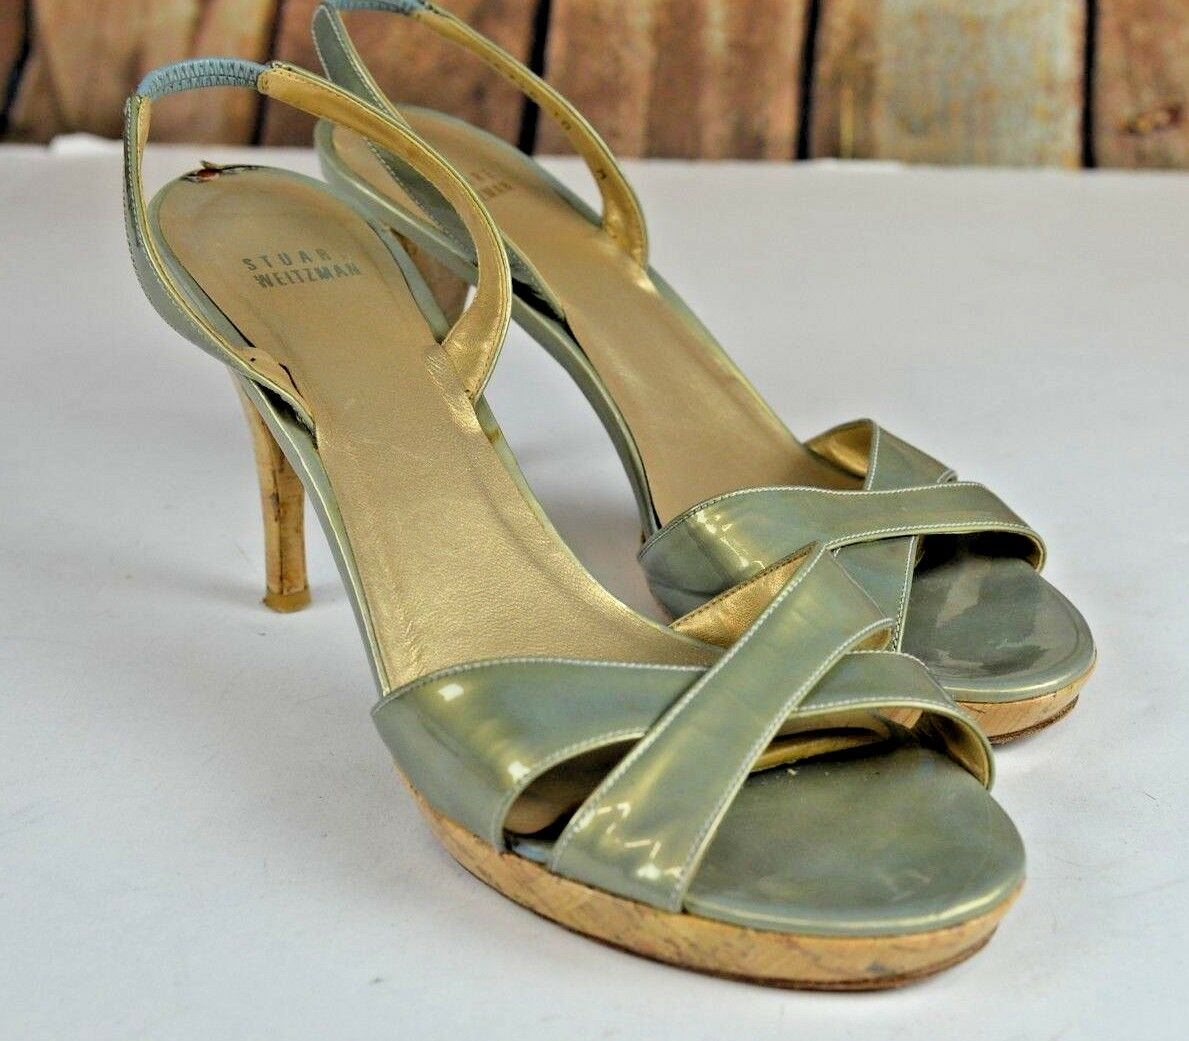 Stuart Weitzman Women's Open Toe Sandals Size 10 Lacquered Spain Ankle Strap